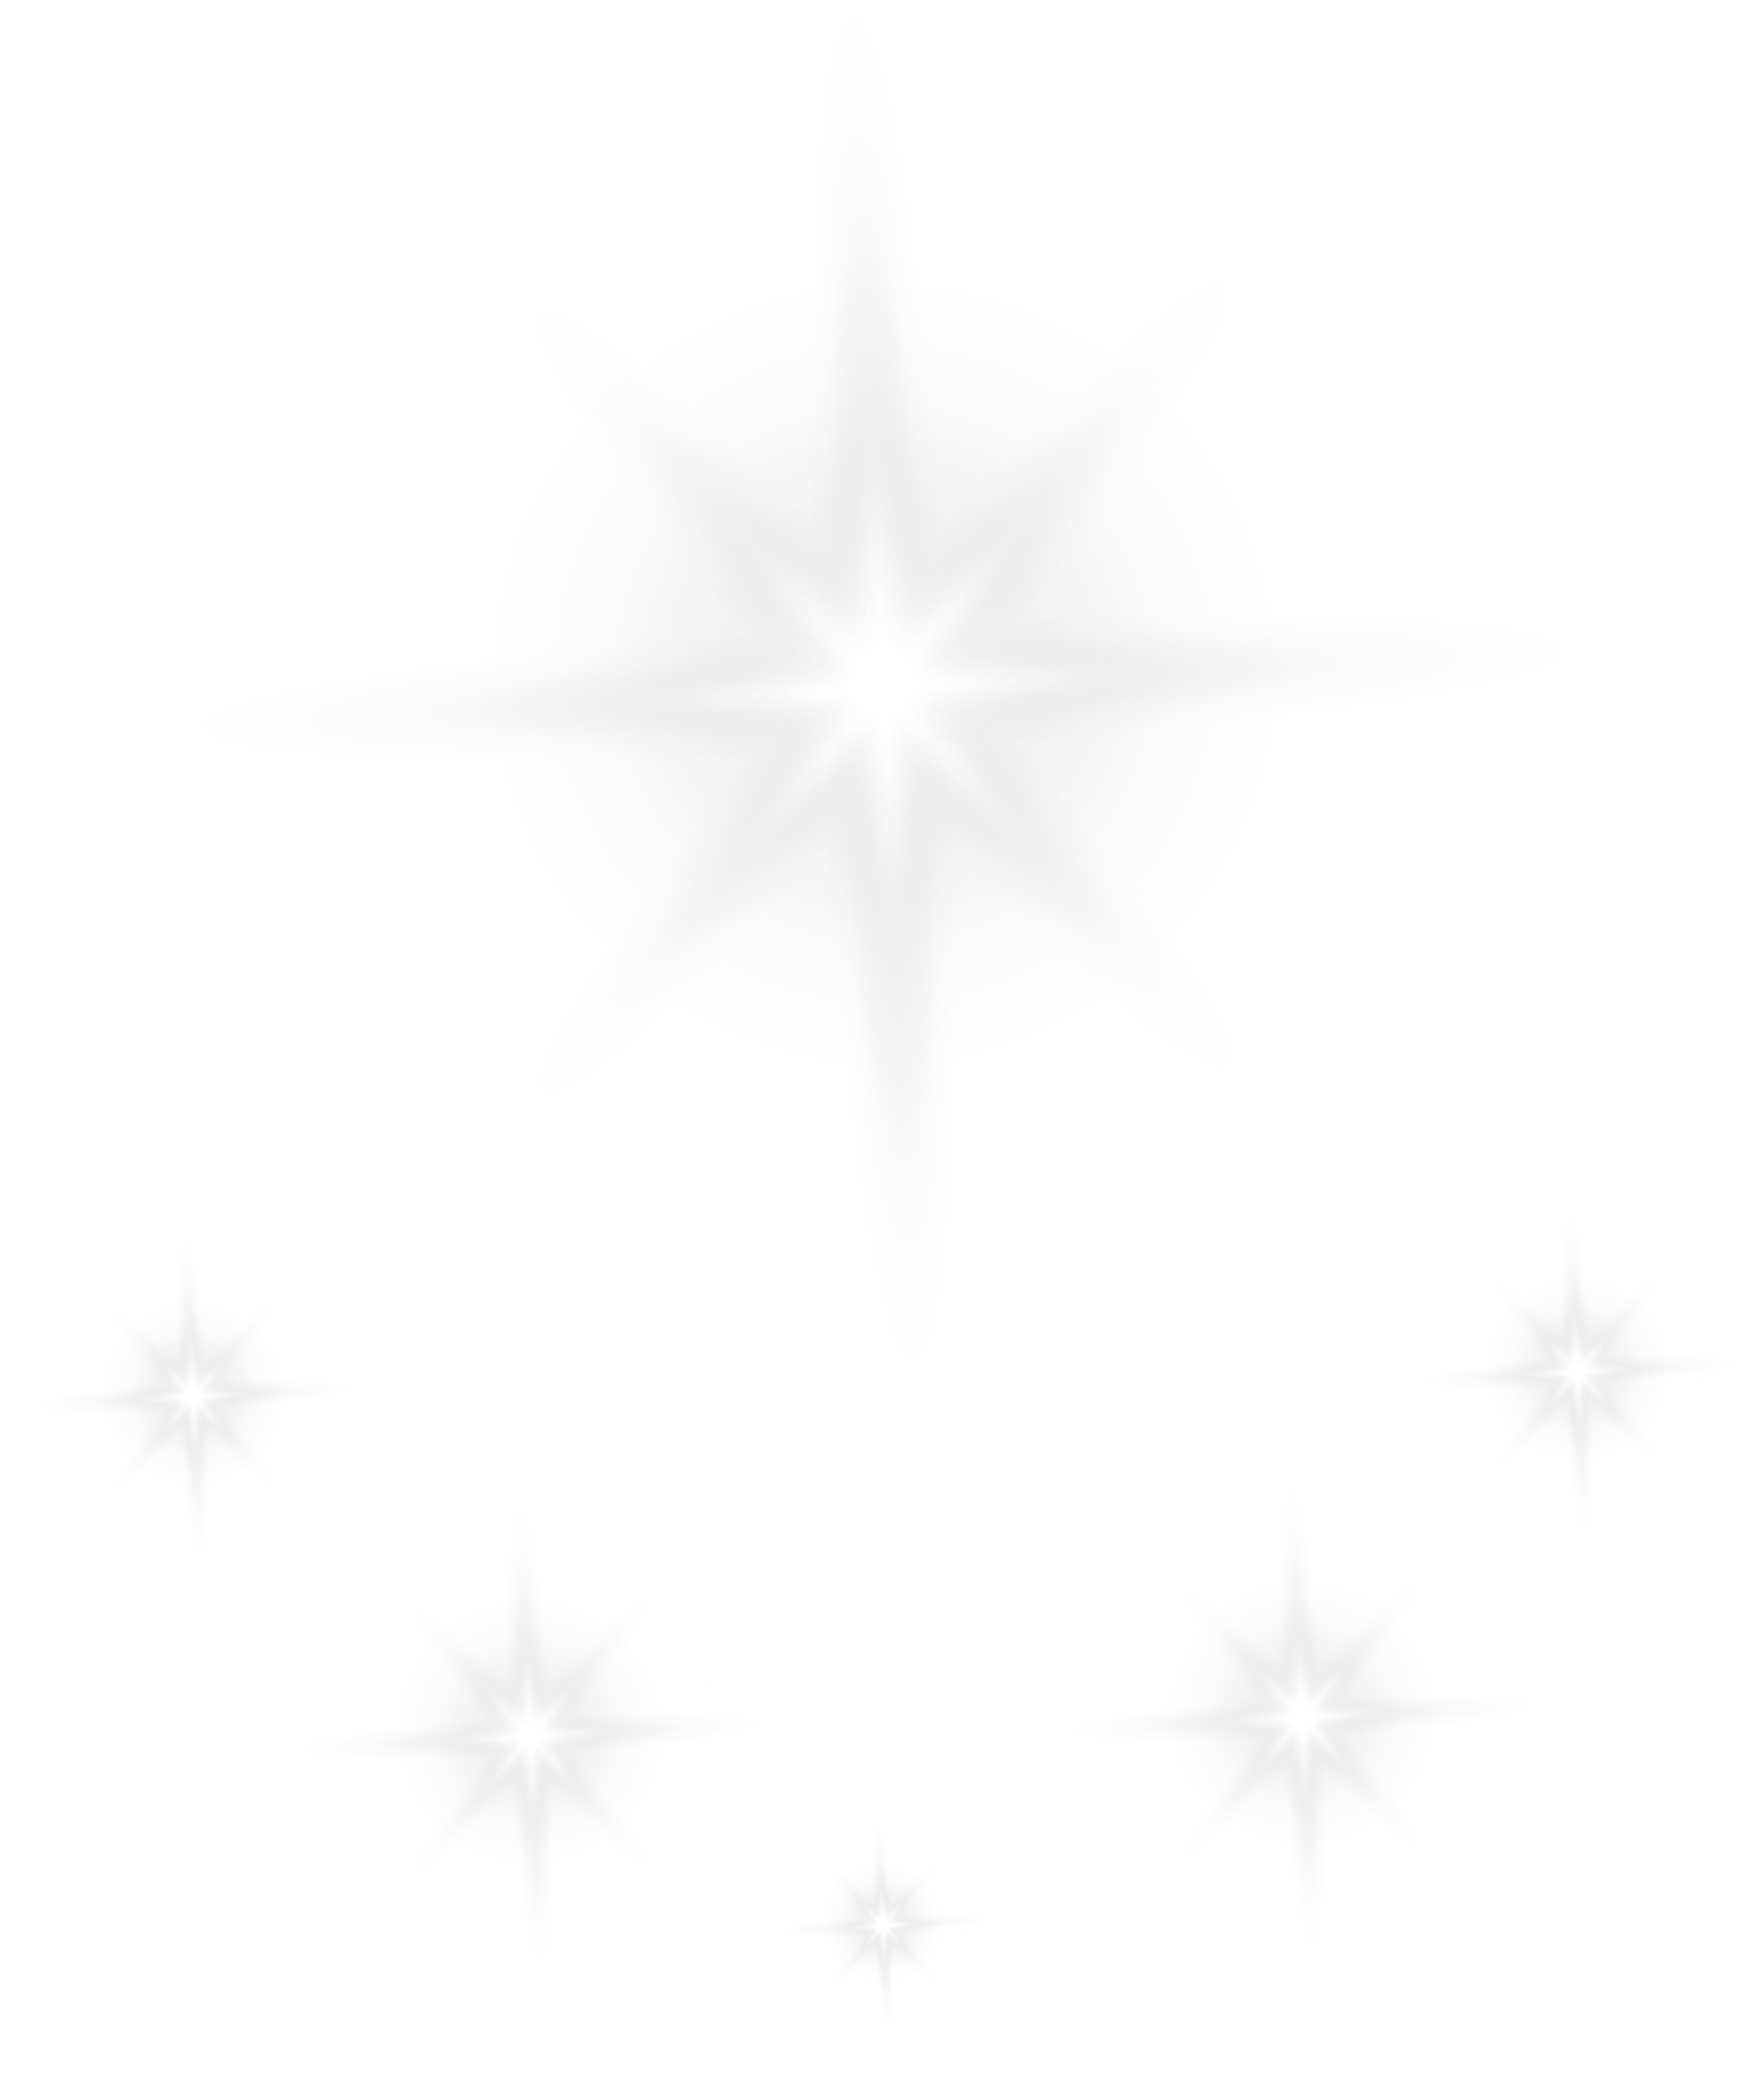 Shining effect clip art. Stars transparent png vector free download